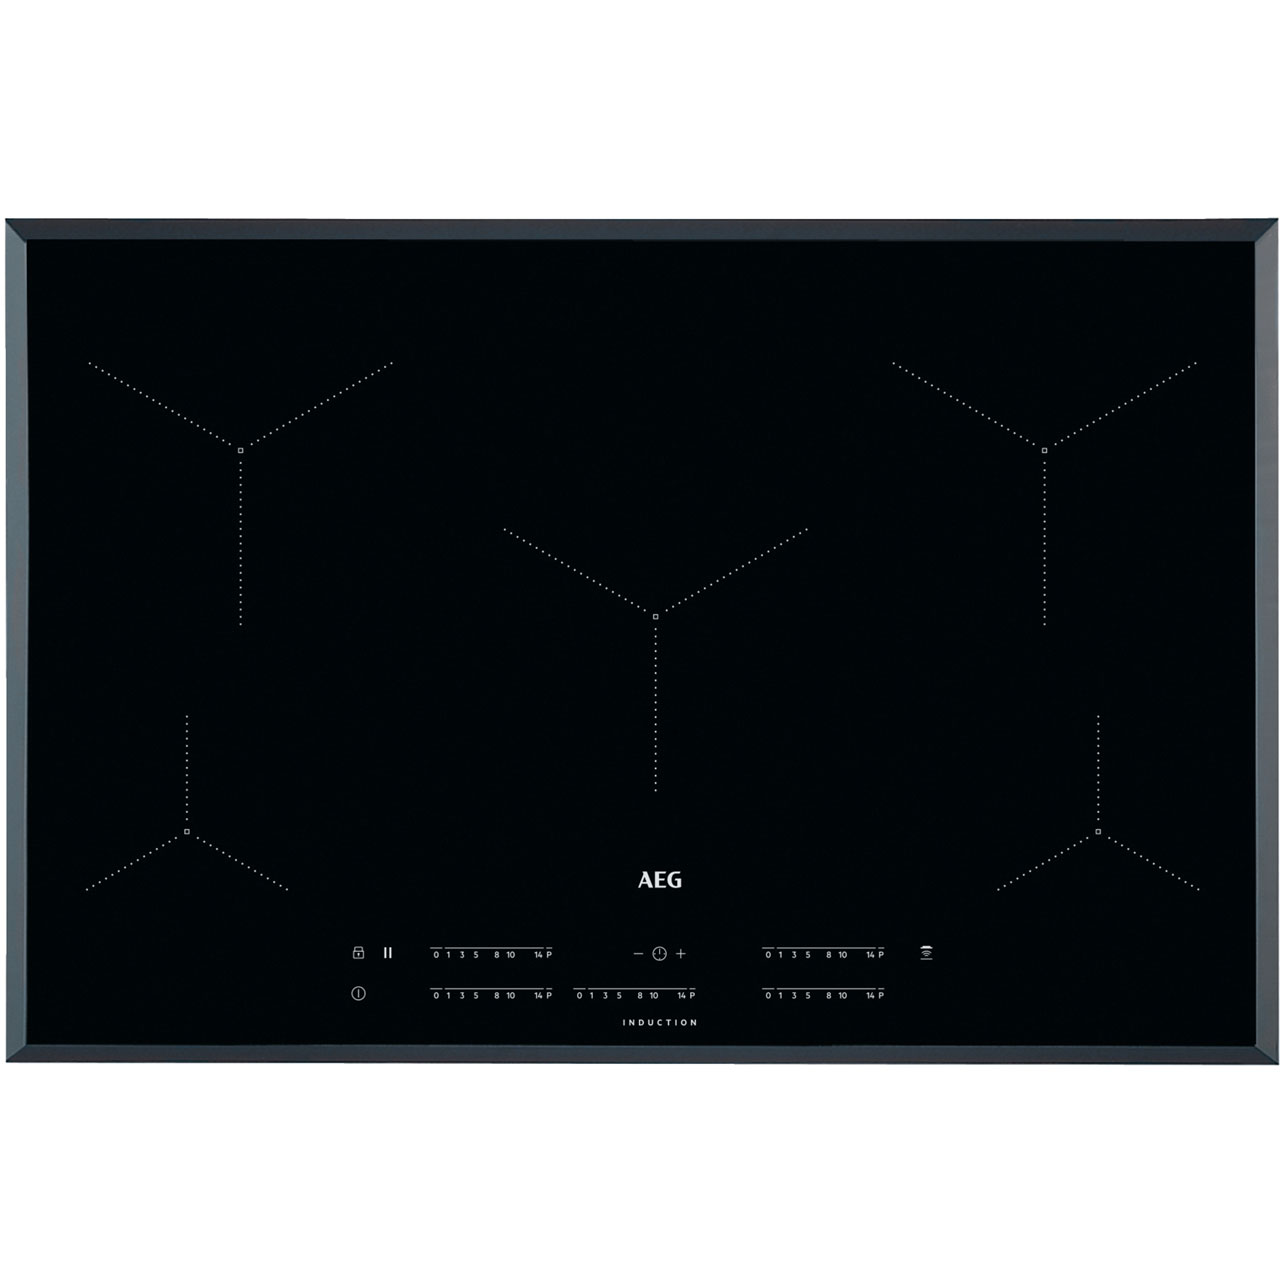 Ike85431fb Bk Aeg Induction Hob Cooker Circuit Diagram As Well Wiring Also Air